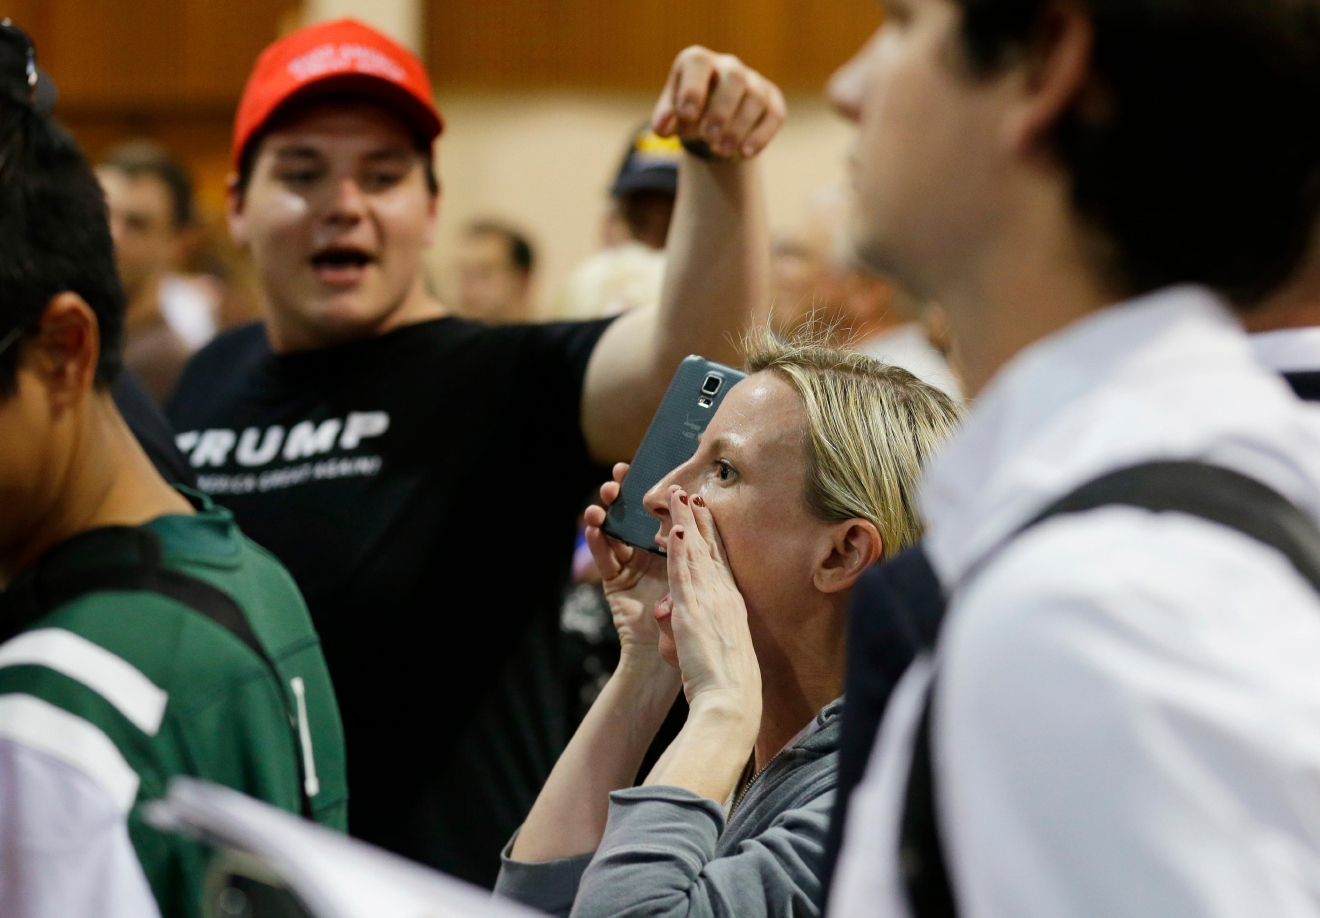 A protestor yells as she is pointed out to security personnel by an attendee at a rally for Republican presidential candidate Donald Trump in Eugene, Ore., Friday, May 6, 2016. The protestor made to leave the floor by security officials. (AP Photo/Ted S. Warren)